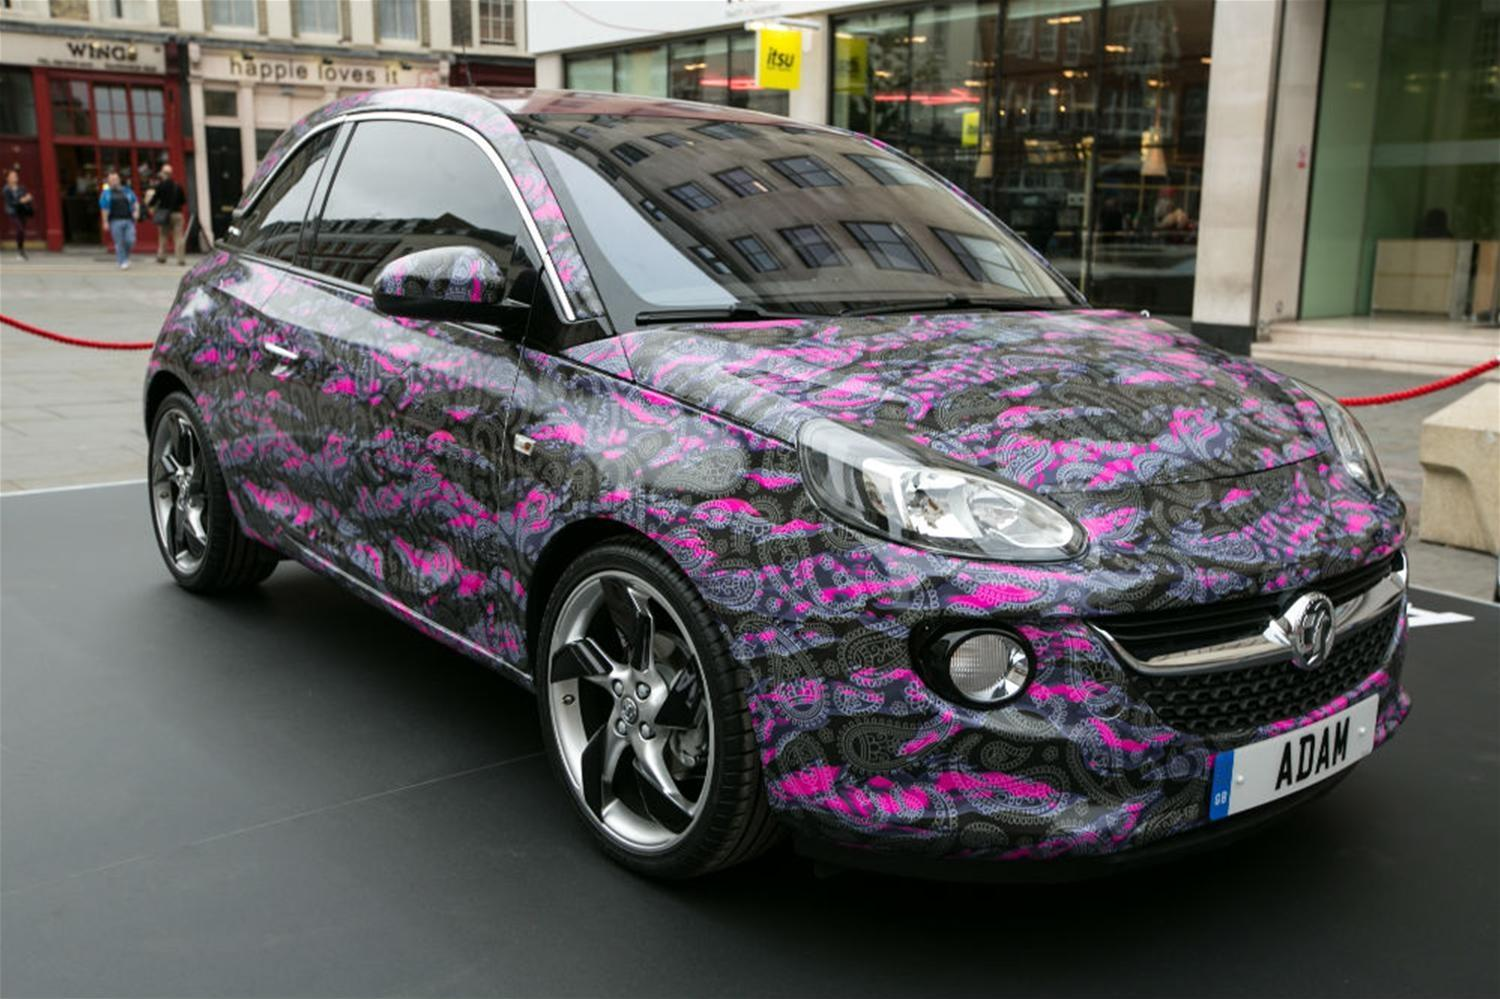 New Vauxhall Adam - A Fashionable Commodity